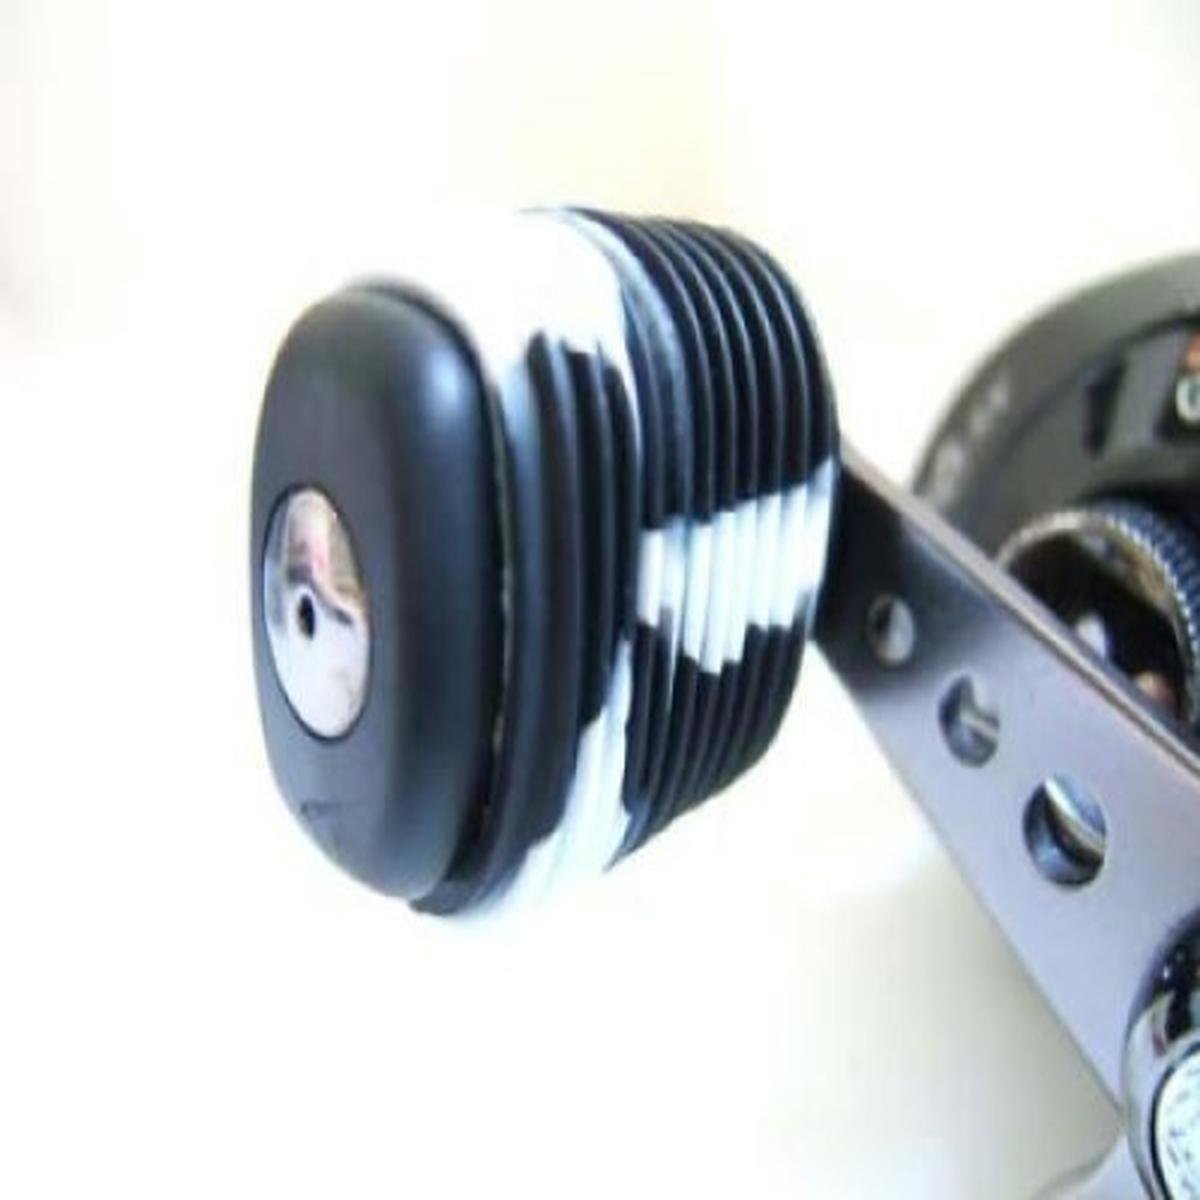 NEW Black and White Tie Dye Finish Reel Grip 1148 Reel Handle Cover